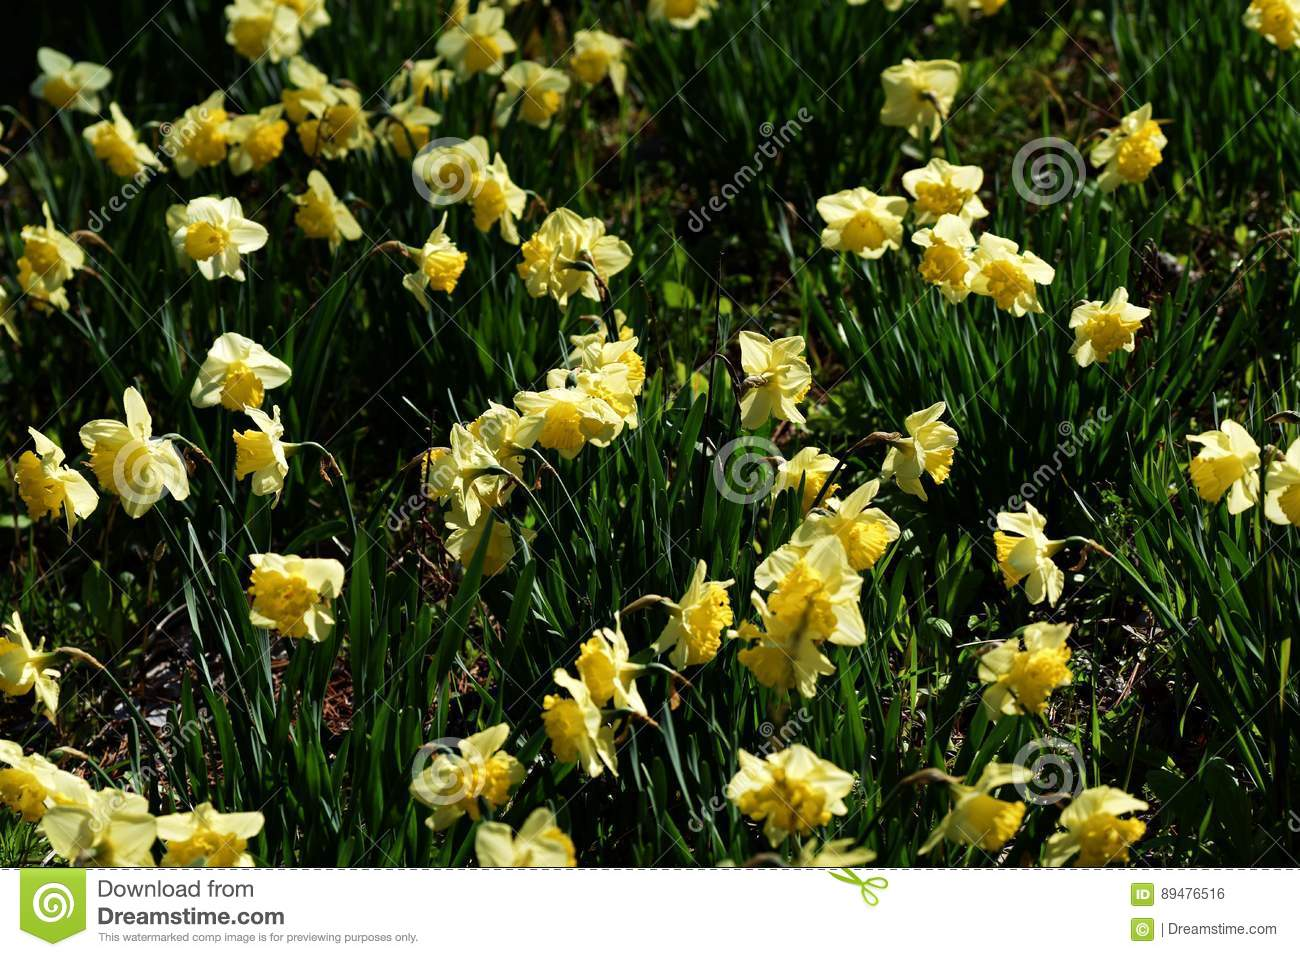 Narcissus stock photo image of yellow perennial poisonous 89476516 narcissus is a perennial plant and white and yellow flowers bloom from winter to spring it comes from the narciss of a young boy appearing in greek myth mightylinksfo